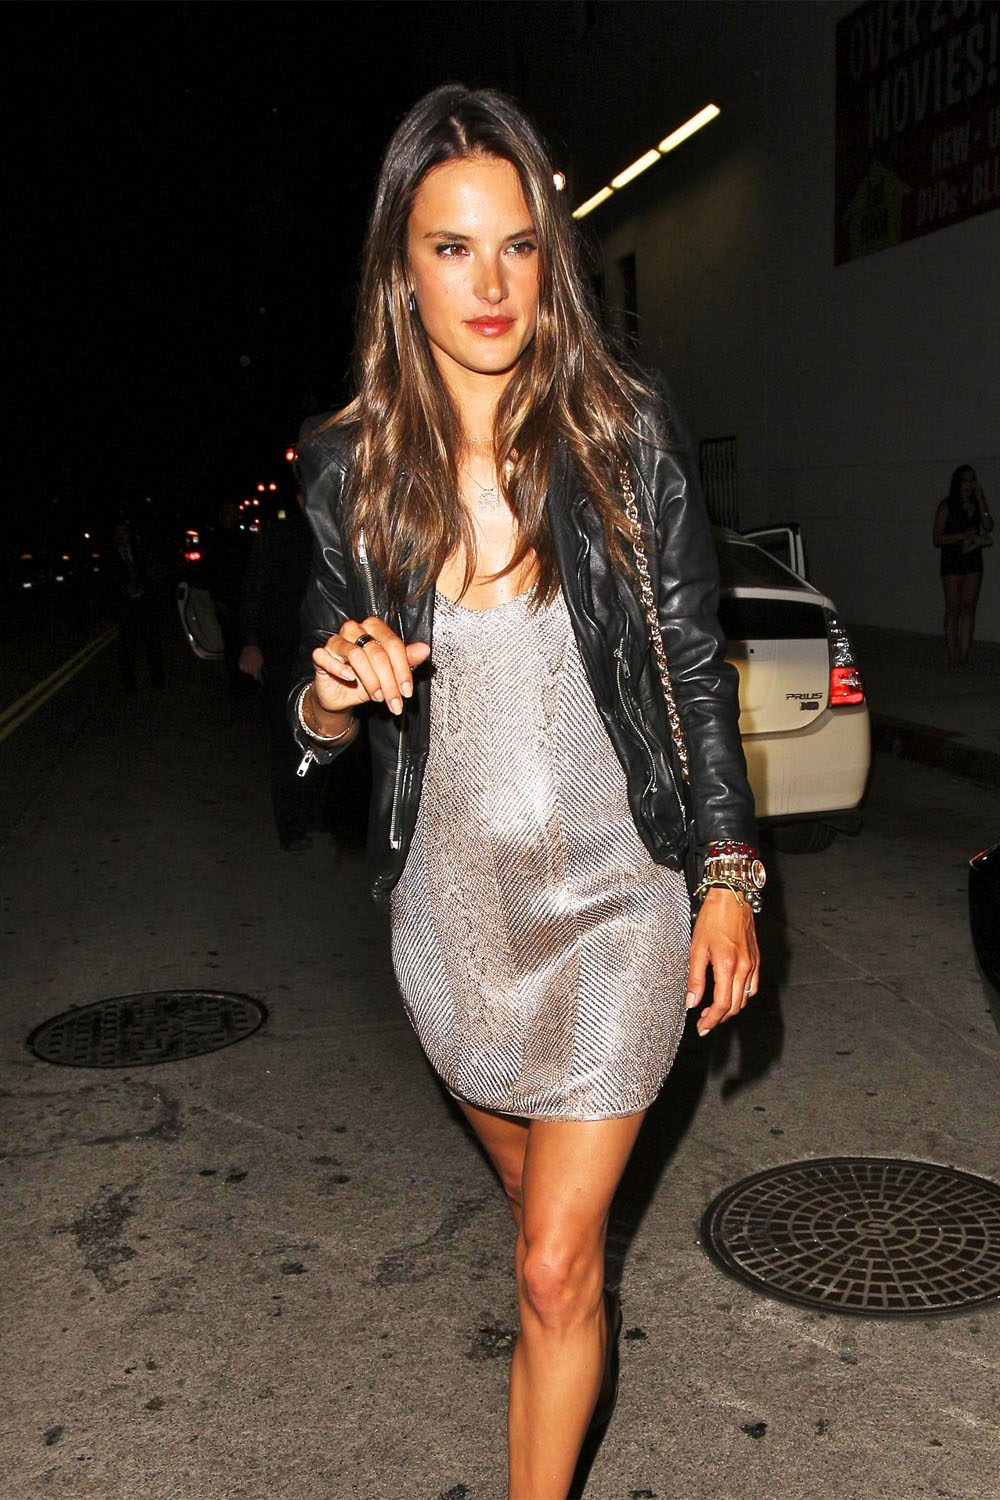 Alessandra Ambrosio leaving the Lure nightclub